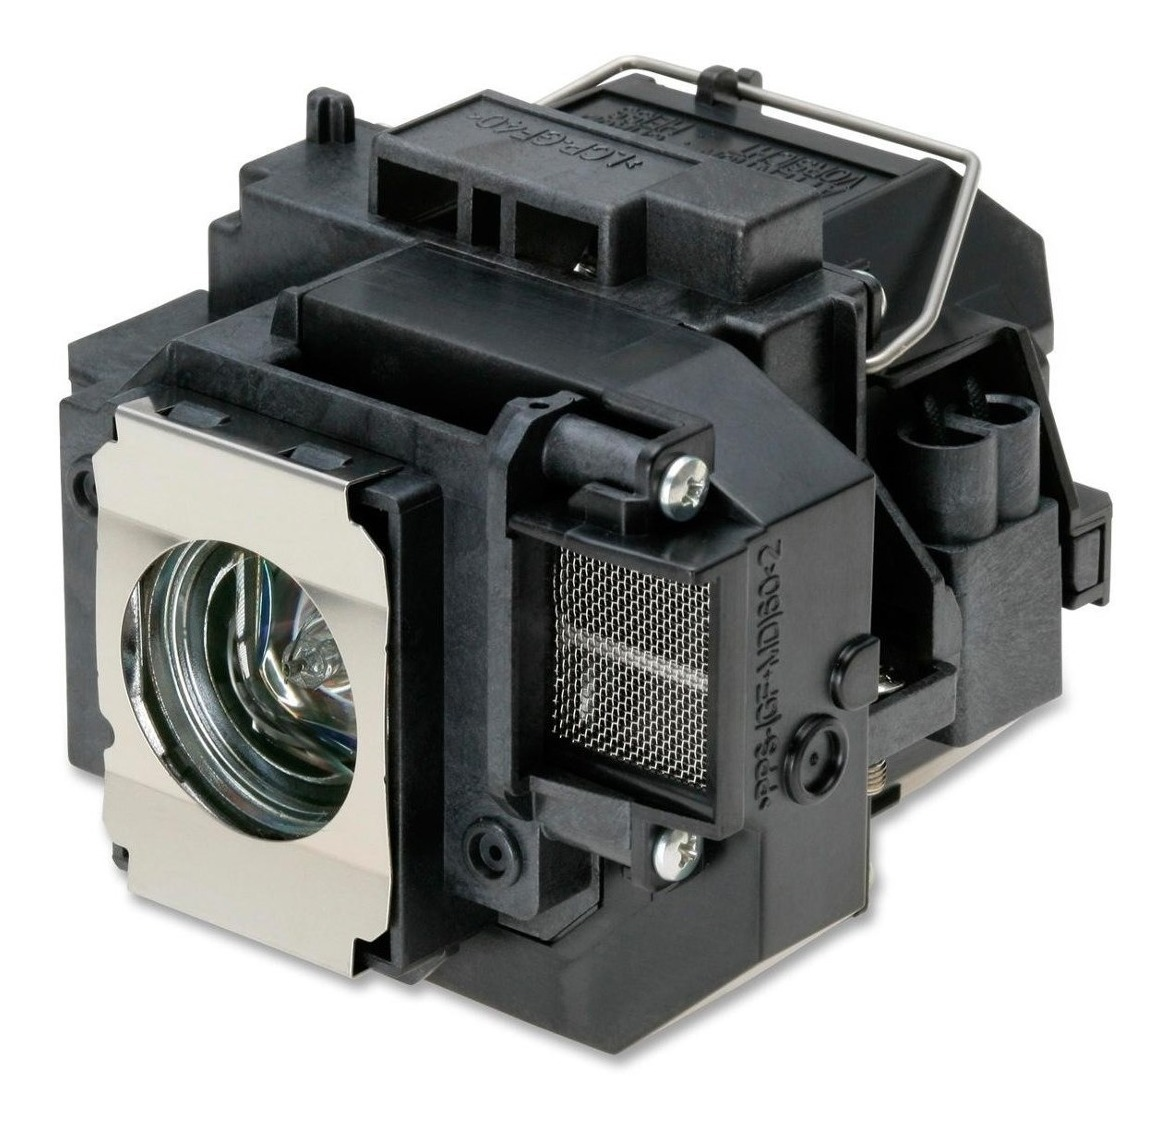 Epson H369a Lampara S9 S10 W10 X10 Proyector Lp58 Elplp58 yYb6v7fg